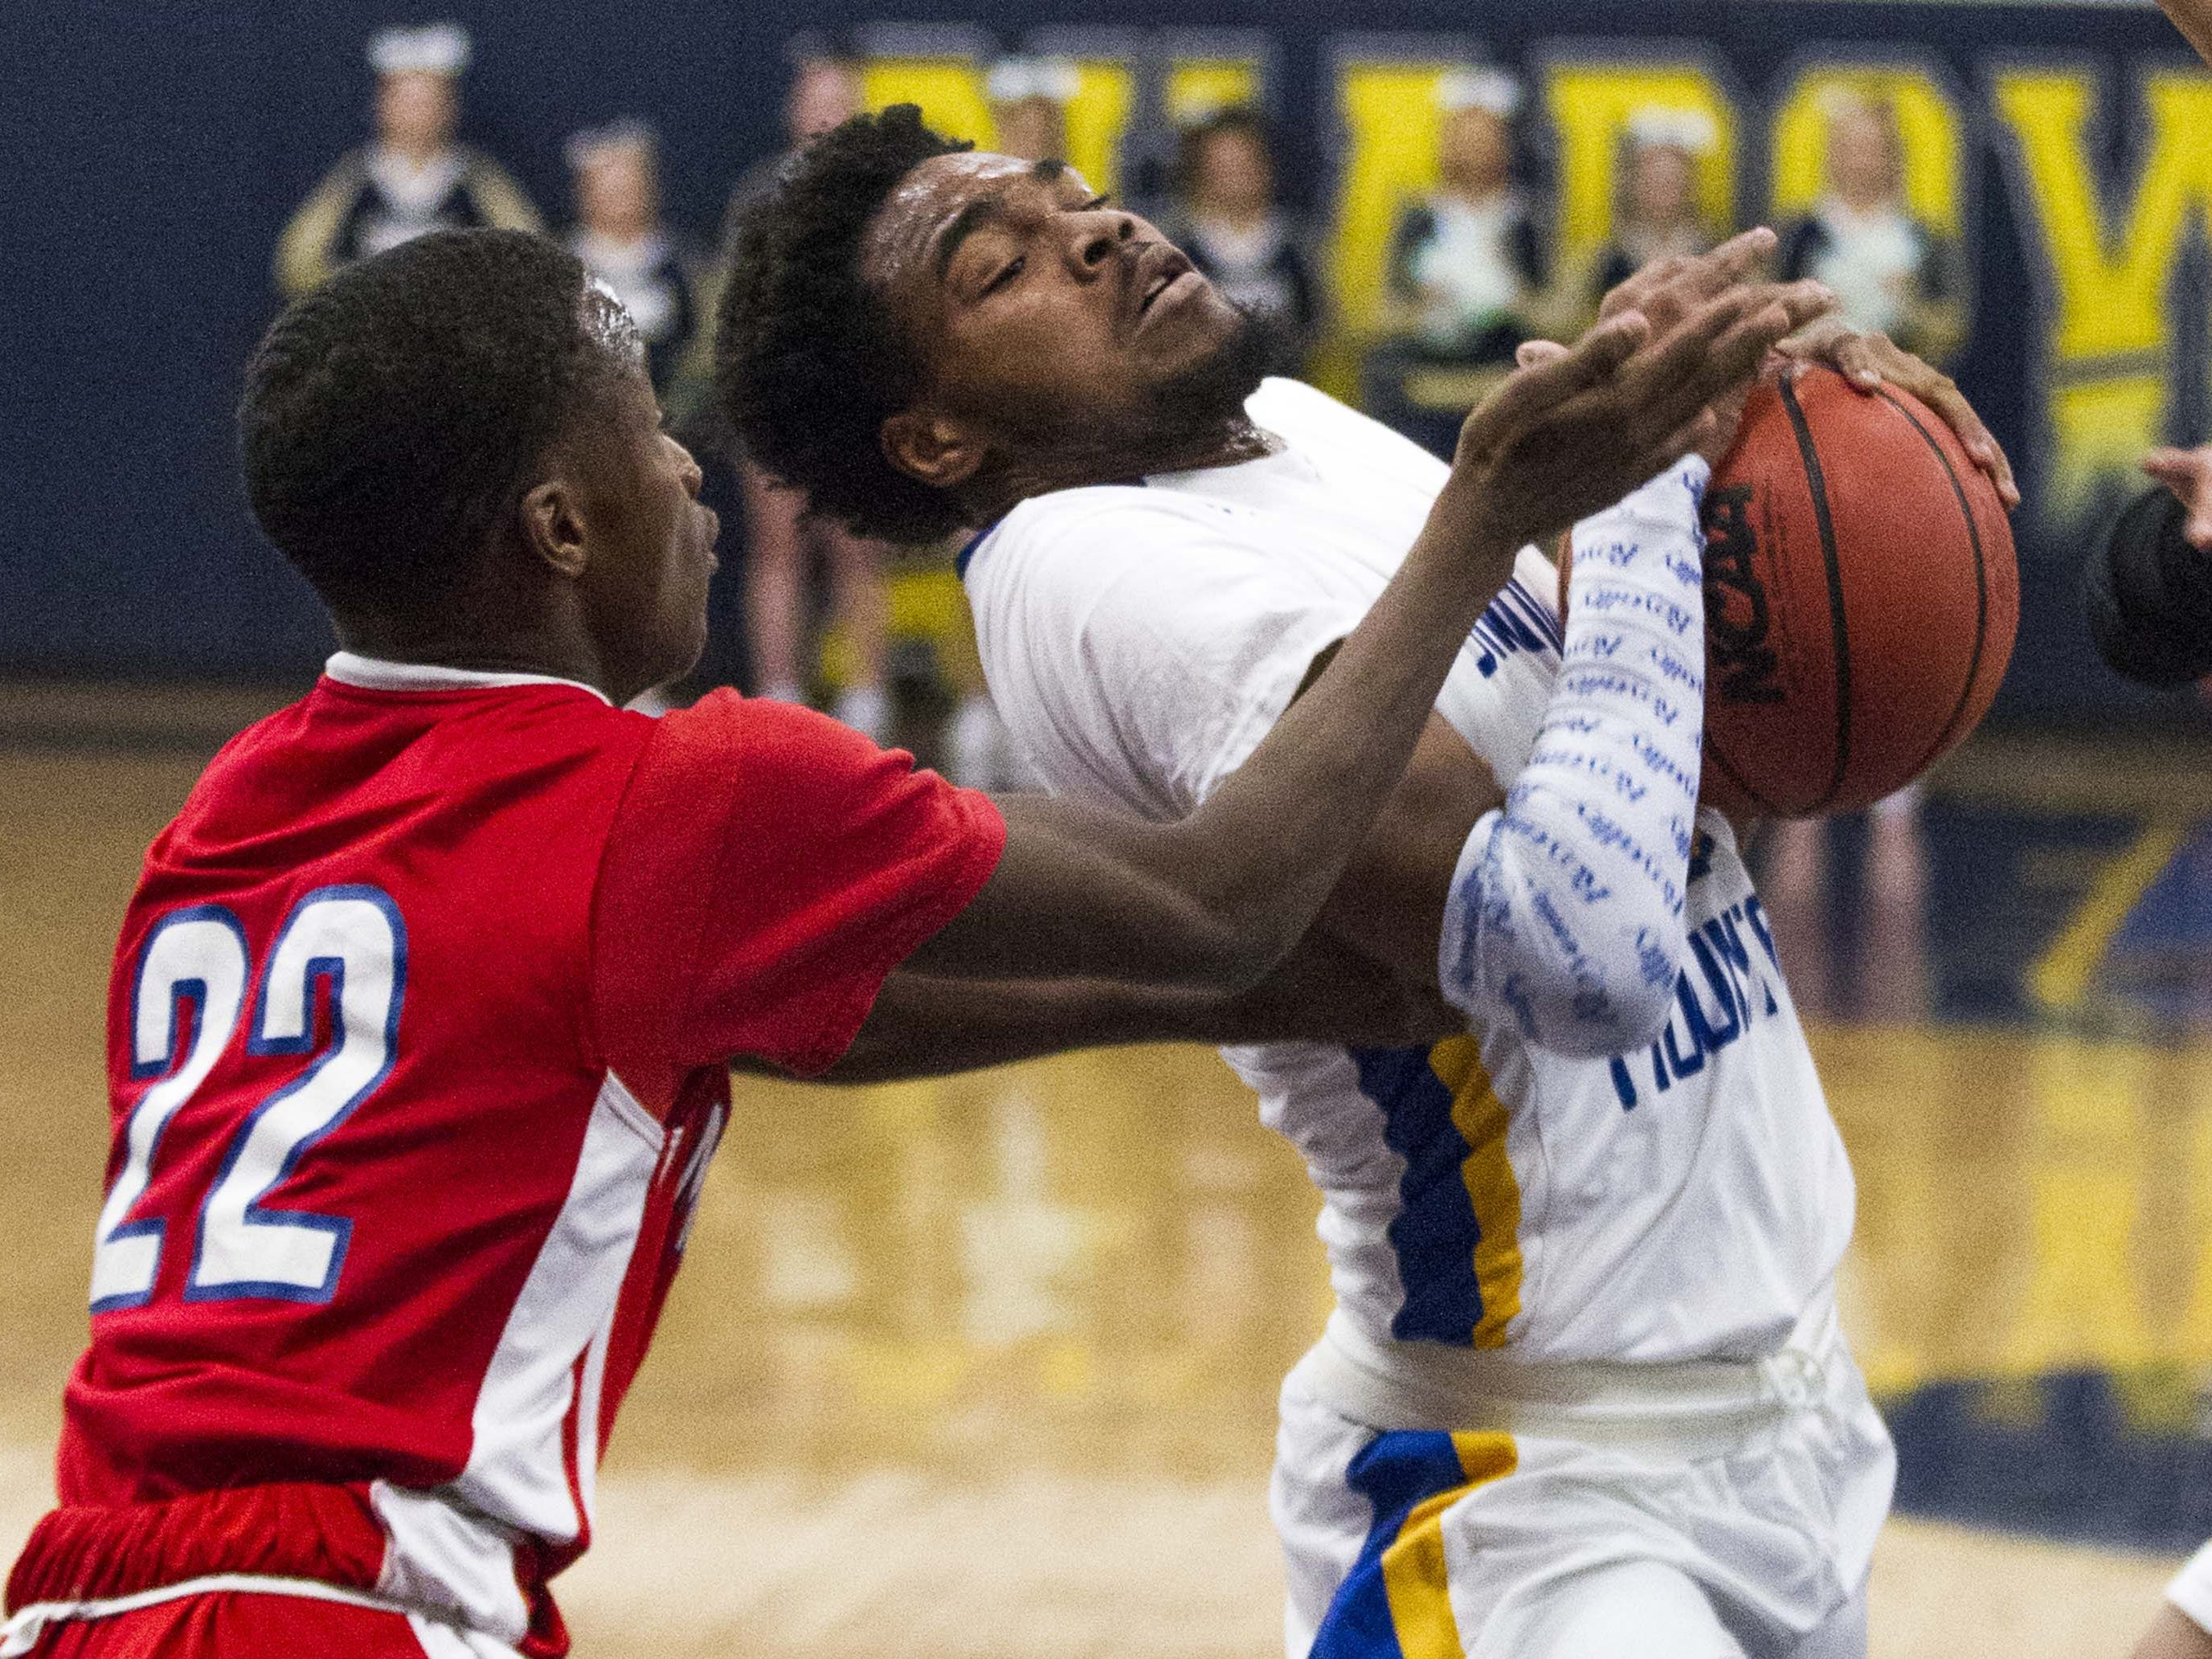 Shadow Mountain's Jalen Williams (0) gets fouled by Moon Valley's Eric Bankhead (22) during the first half of their game in Phoenix, Tuesday, Feb .12,  2019. #azhsfb